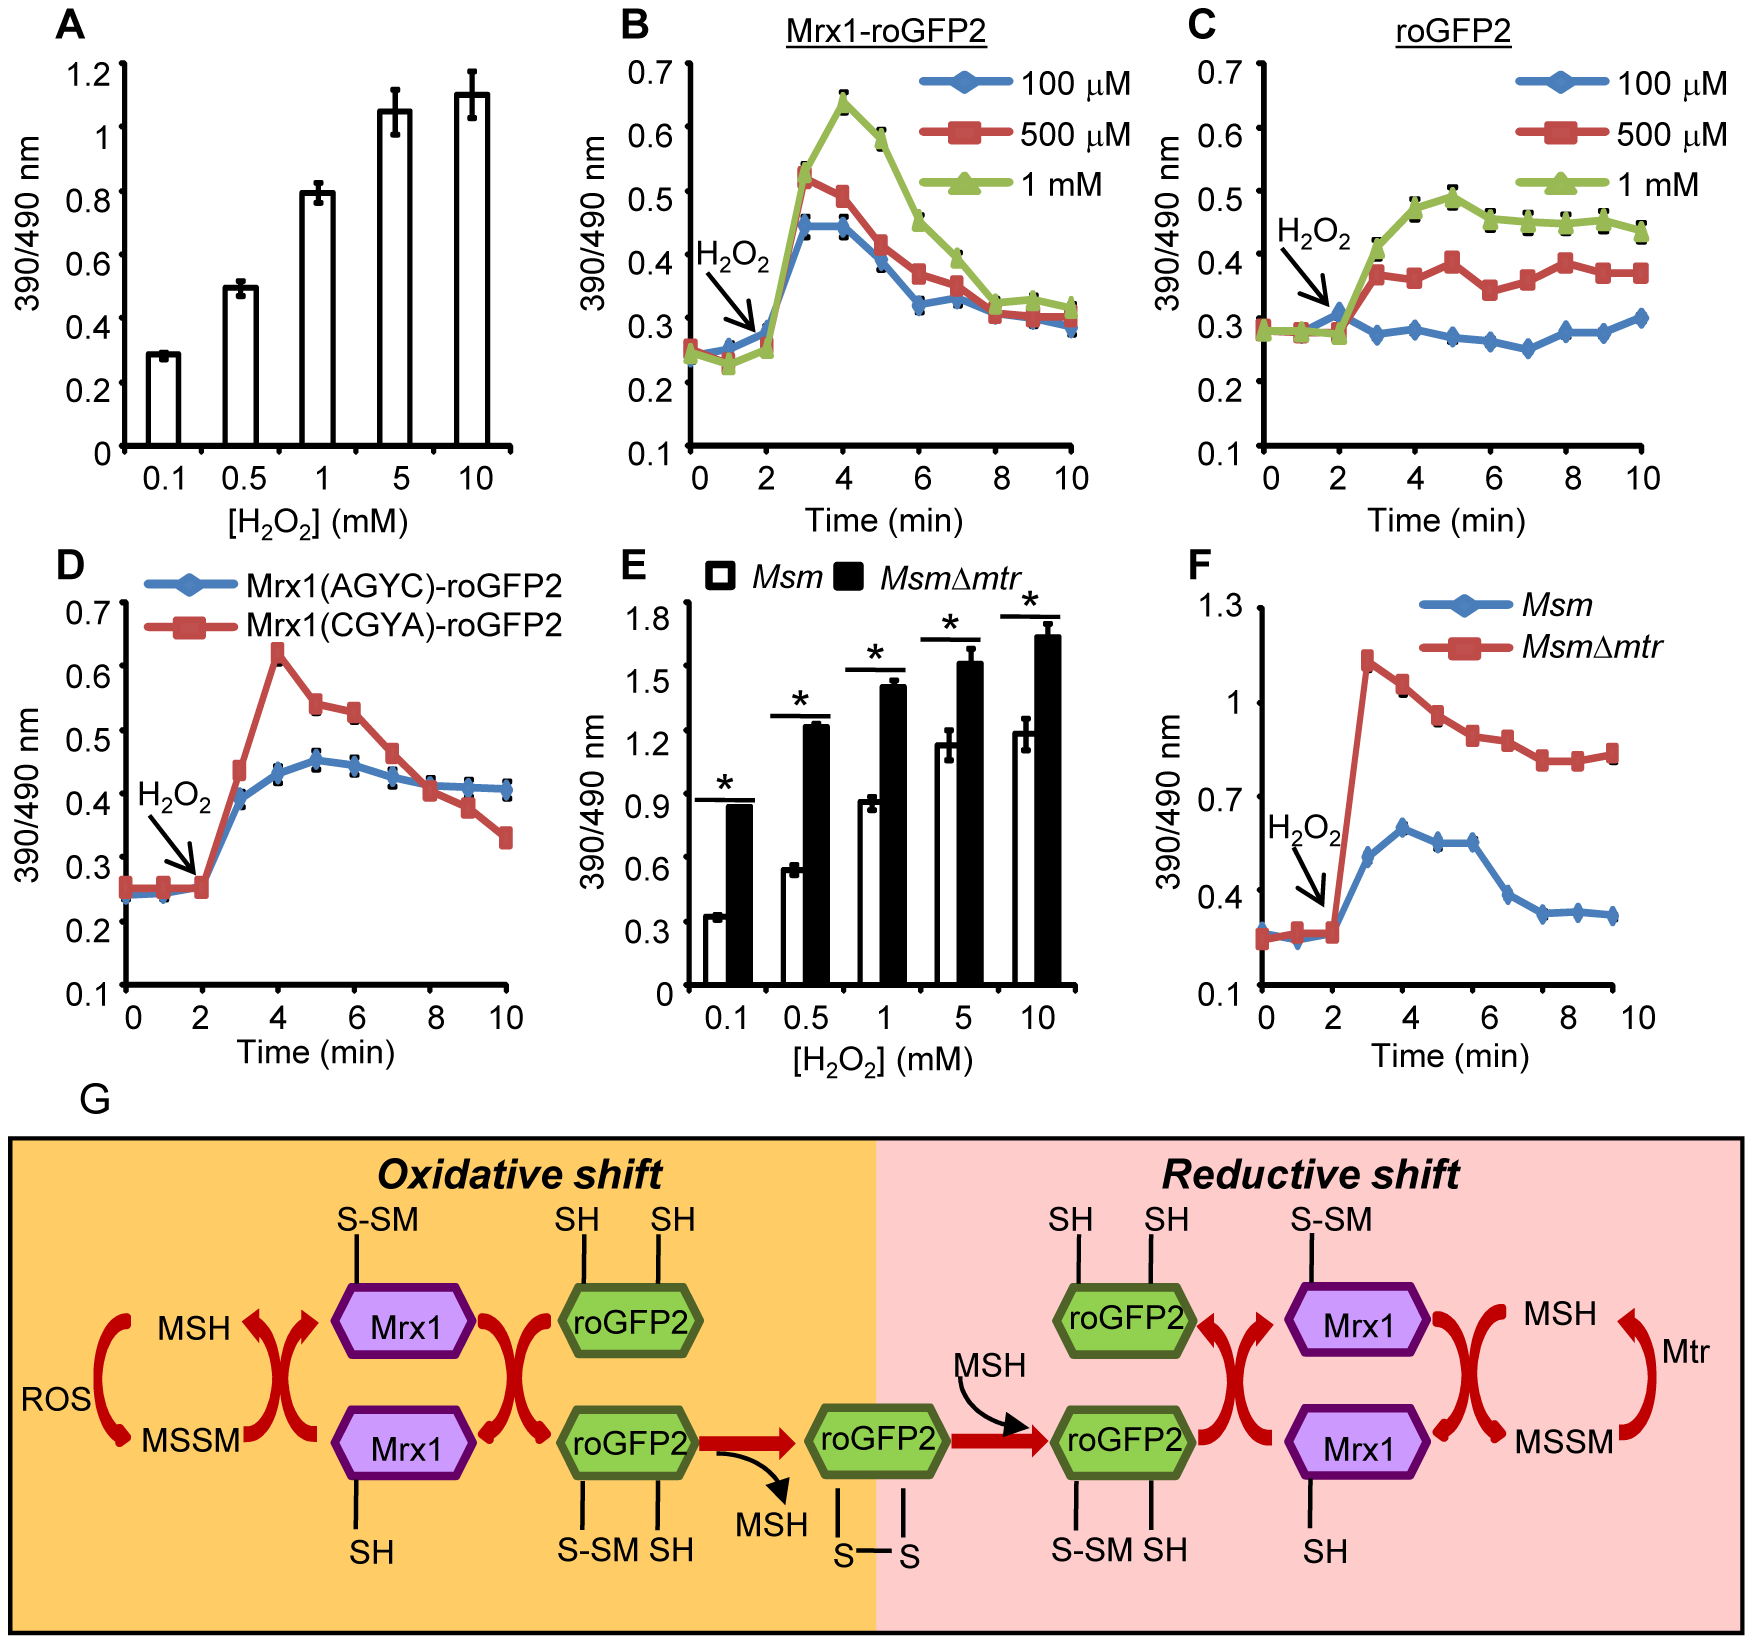 Coupling of Mrx1 with roGFP2 facilitates detection of transient redox changes in mycobacteria.